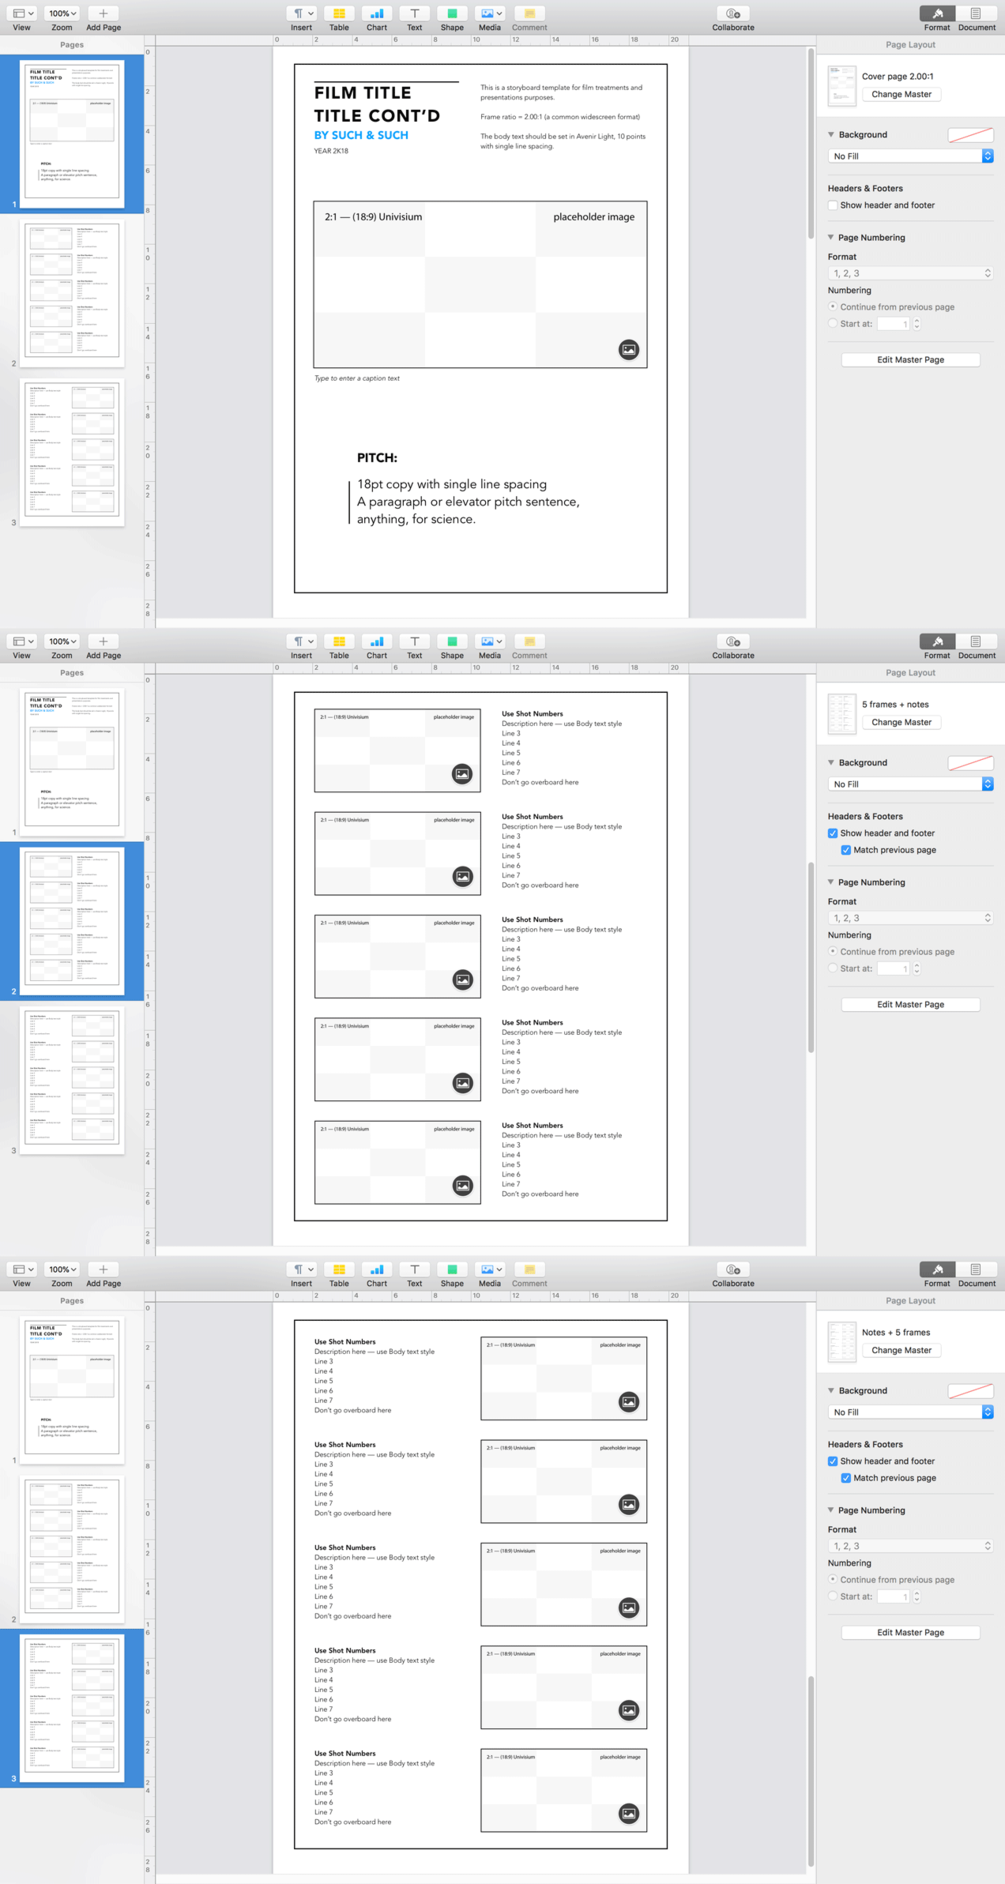 Apple Pages Storyboard Template, 5 frames per sheet for 2